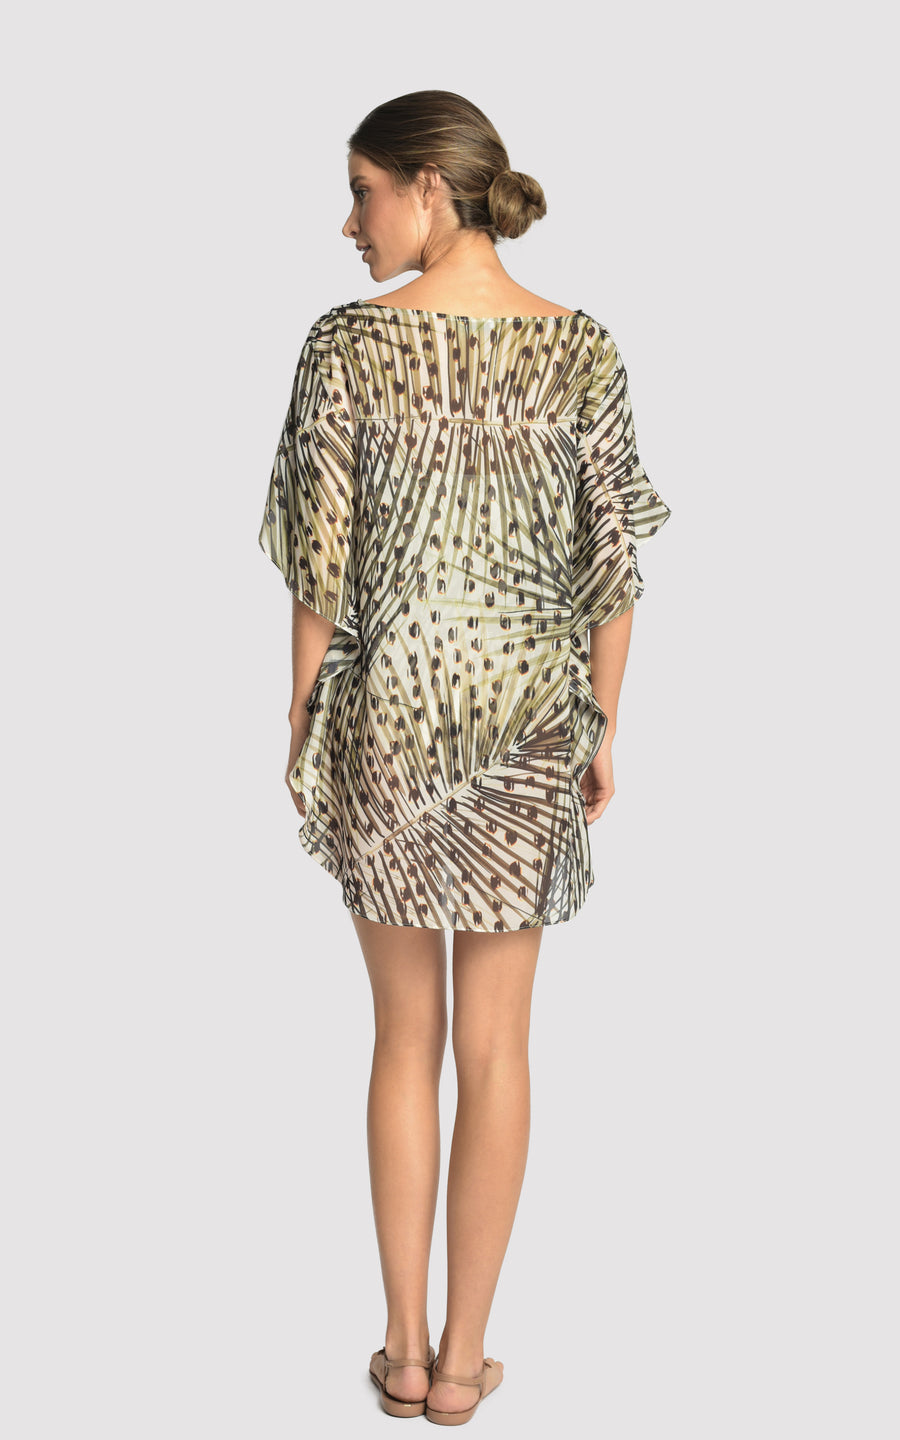 Cheetah New Caftan Ju Cove-Up